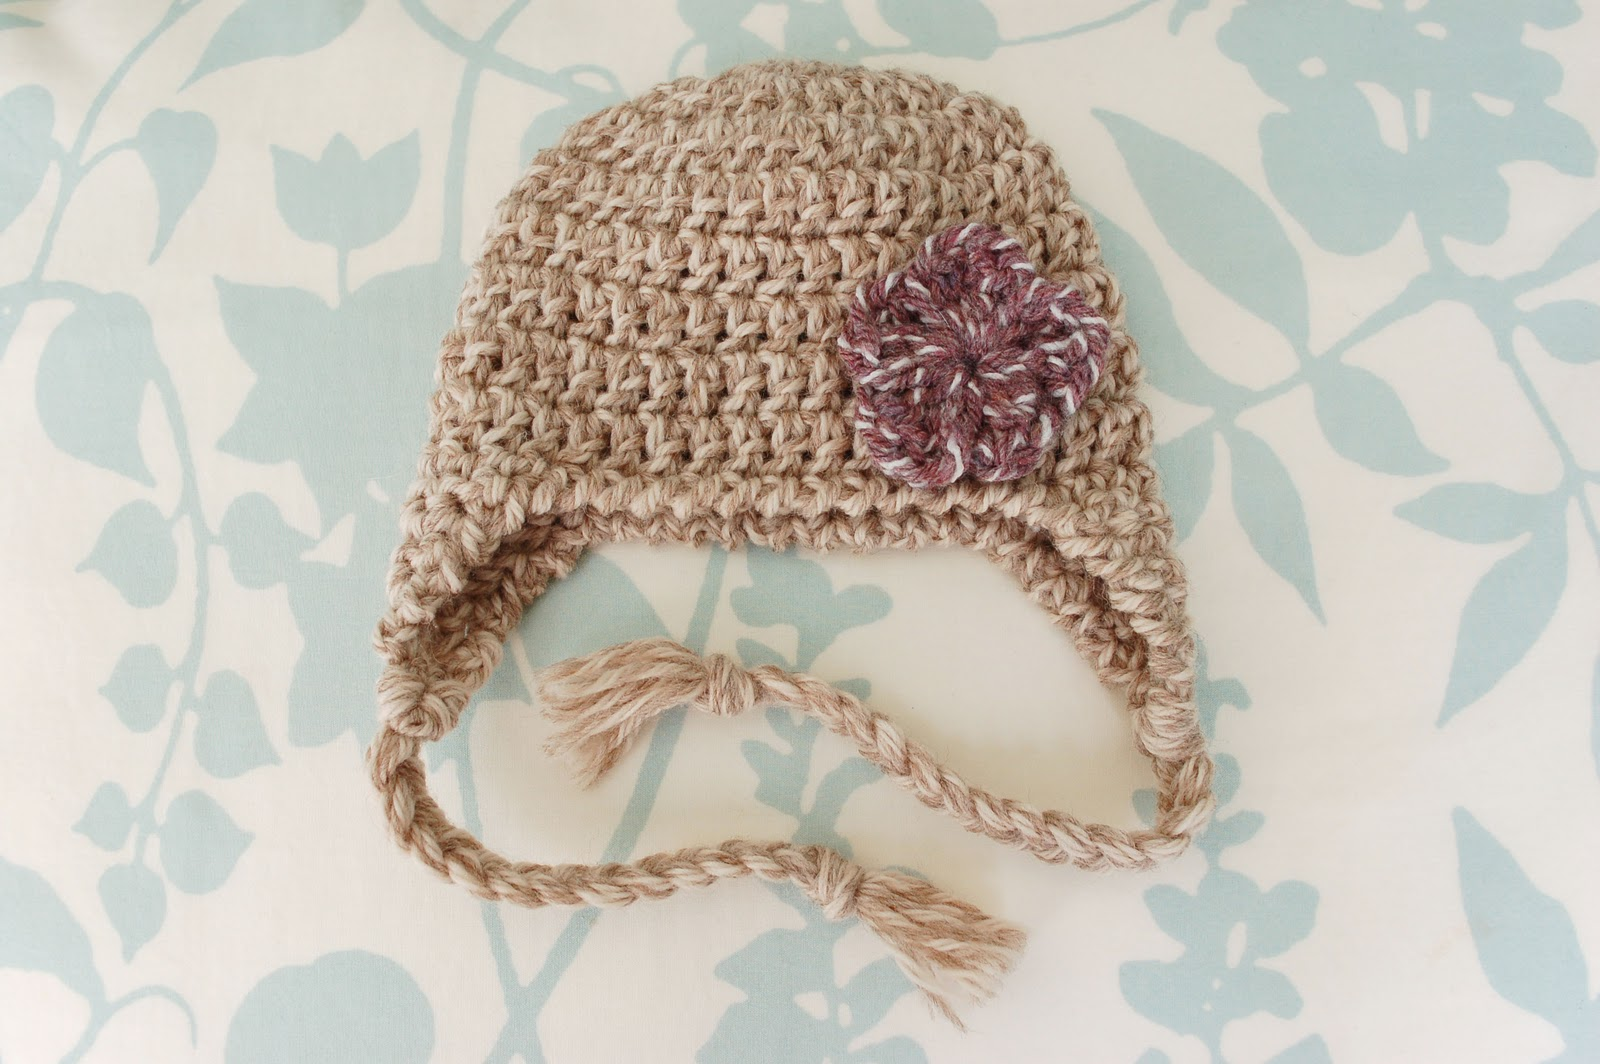 Free Crochet Pattern For A Newborn Hat : Alli Crafts: Free Pattern: Earflap Hat Newborn Old Version